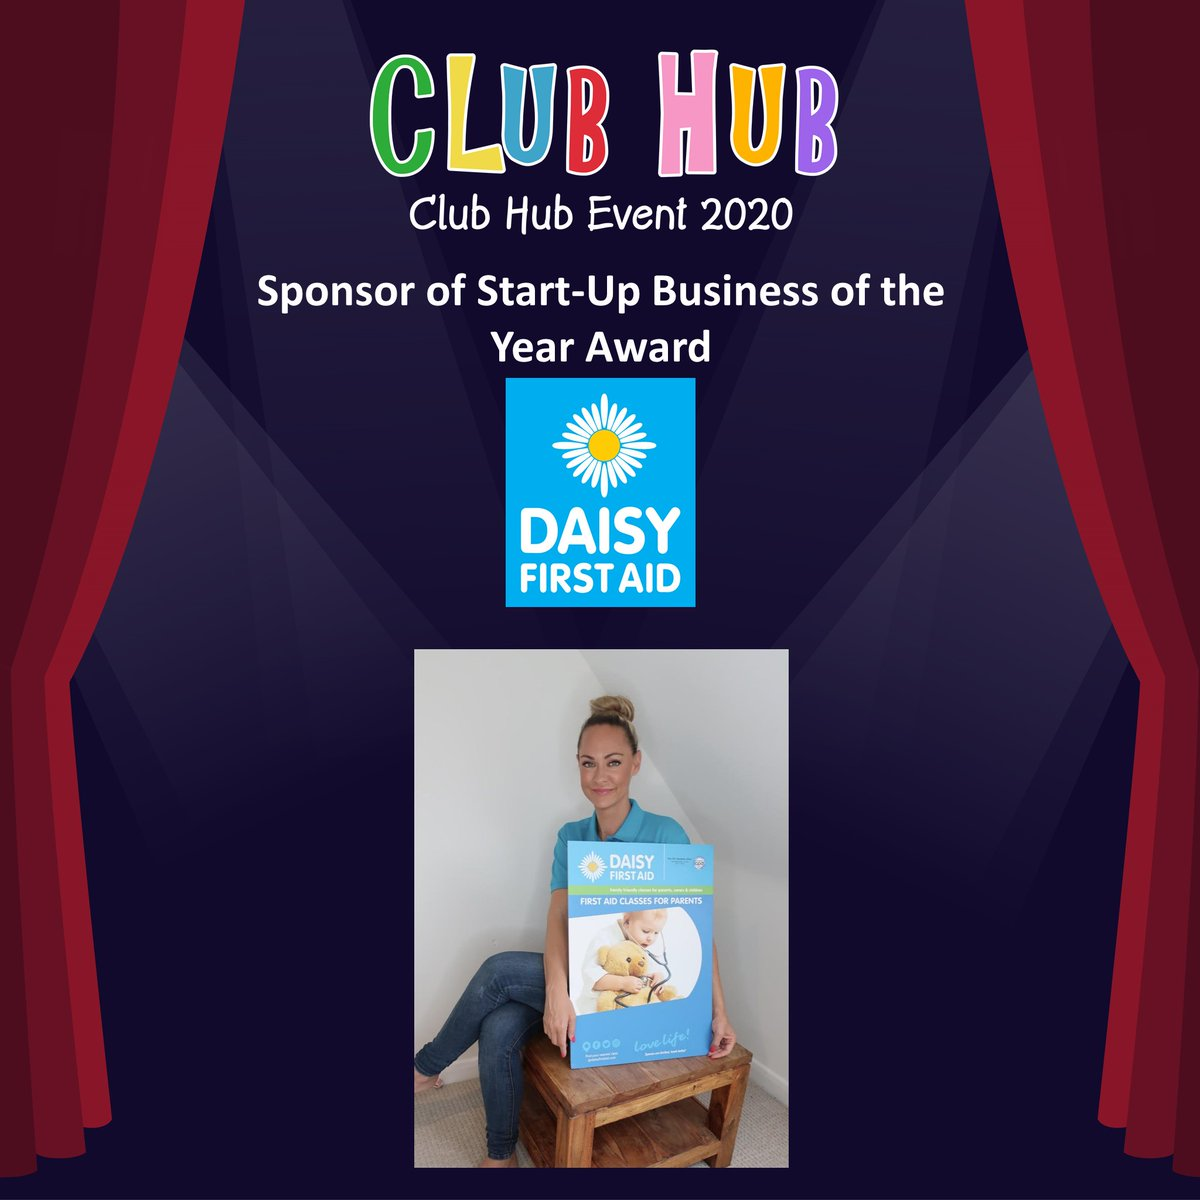 Congratulations to these businesses who have been nominated for Start-Up Business of the Year Sponsored by @daisyfirstaid   https://clubhubuk.co.uk/club-hub-event-2020/2020-entry-categories/…  @LingototBexley  @LingototGrav  @LittleLearnerBN @llfootballuk @TyroneMess @LaneRole  @LullaBabyWorcs @MamaBabyBliss @MessyNSurreypic.twitter.com/7HB2HJIp2z